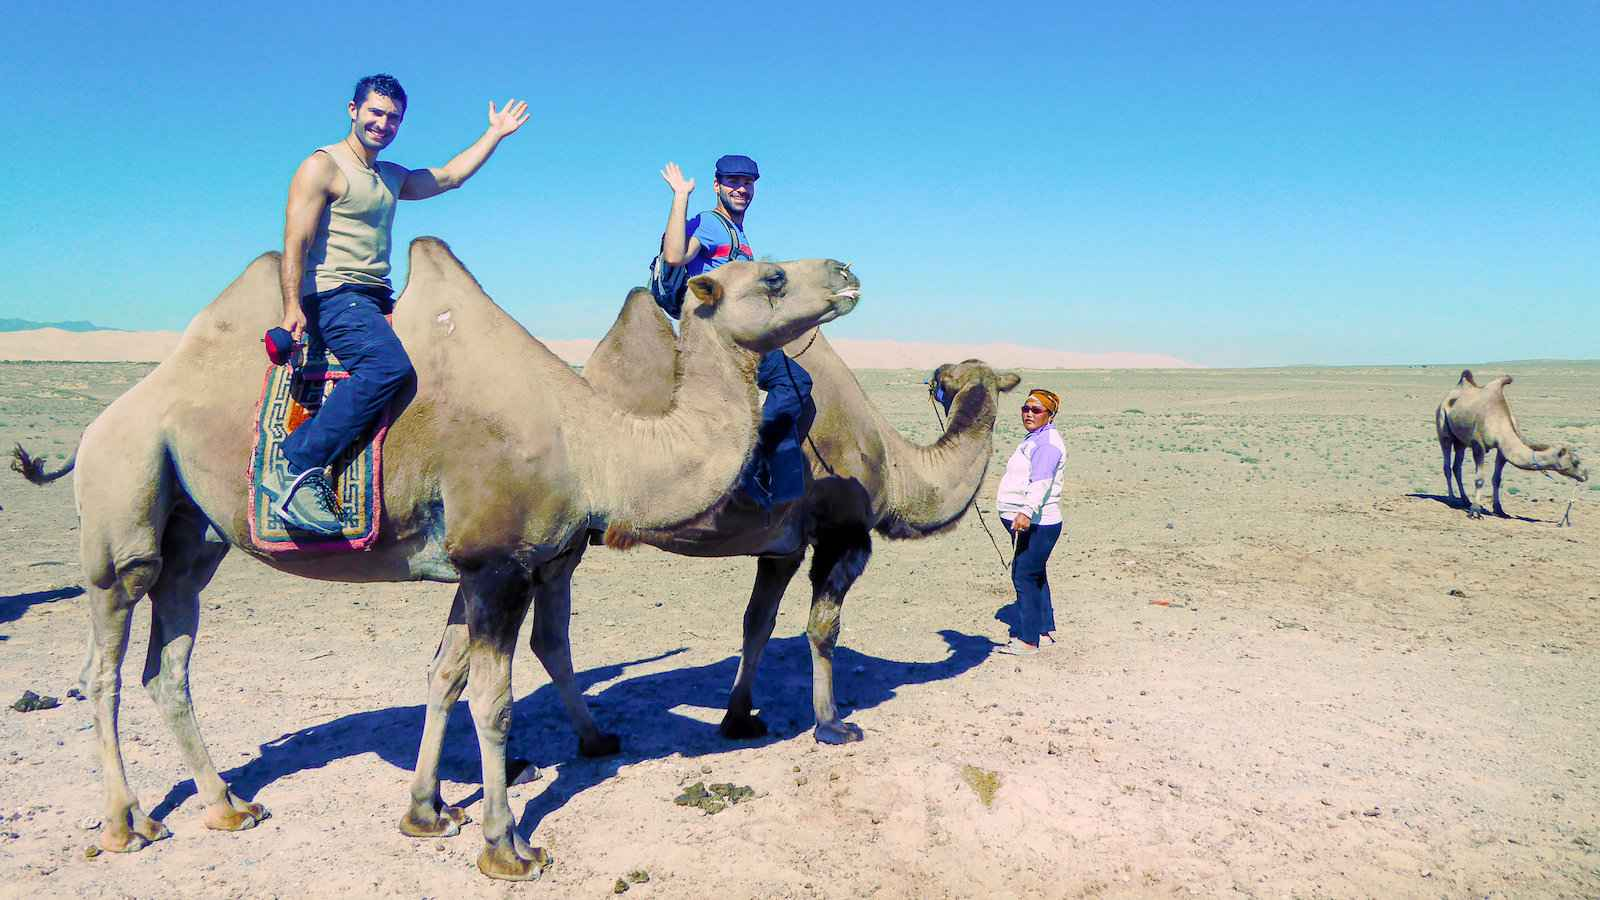 Mongolia is safe destination for gay travelers although you should exercise some caution with PDAs